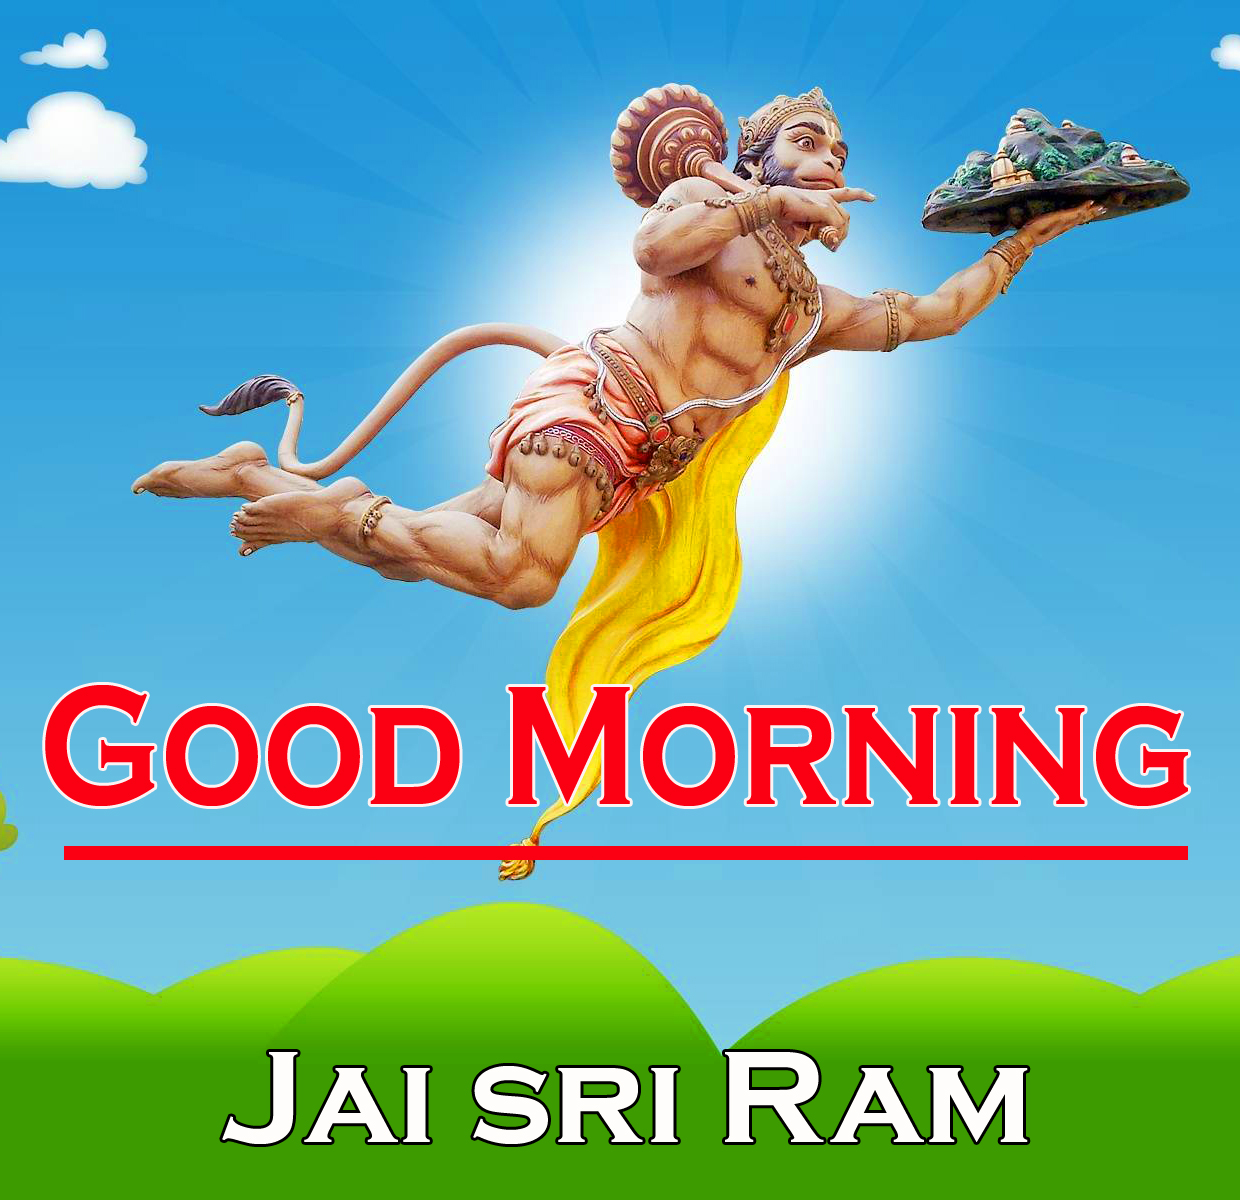 Hanuman Ji Good Morning Images Pics Wallpaper for Whatsapp / Facebook